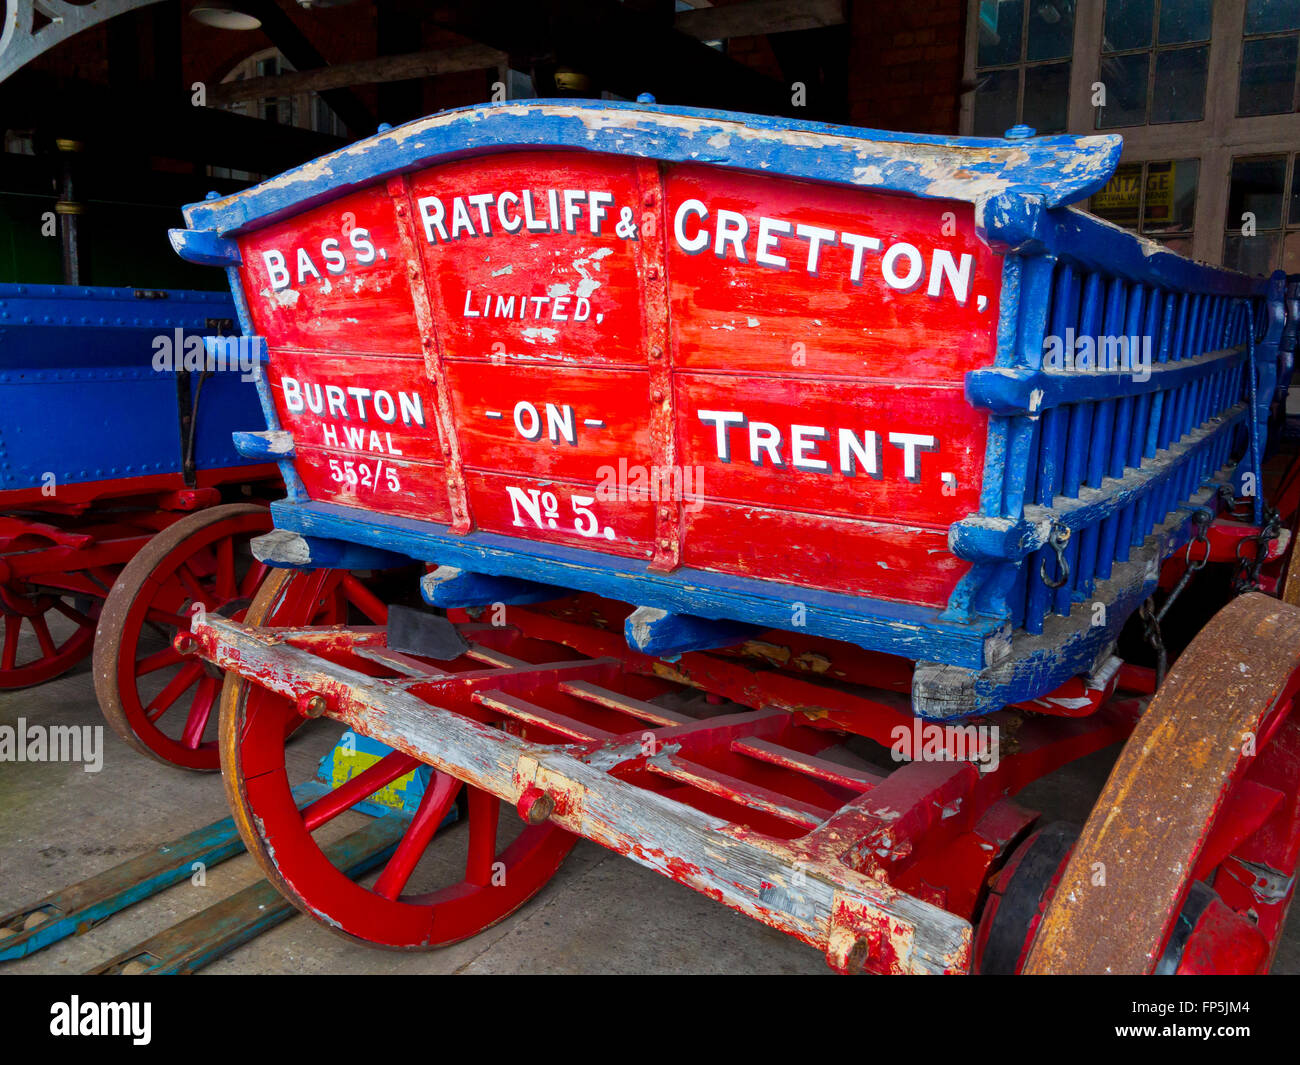 Old horse drawn wagon at the National Brewery Centre a museum in Burton upon Trent Staffordshire England UK - Stock Image